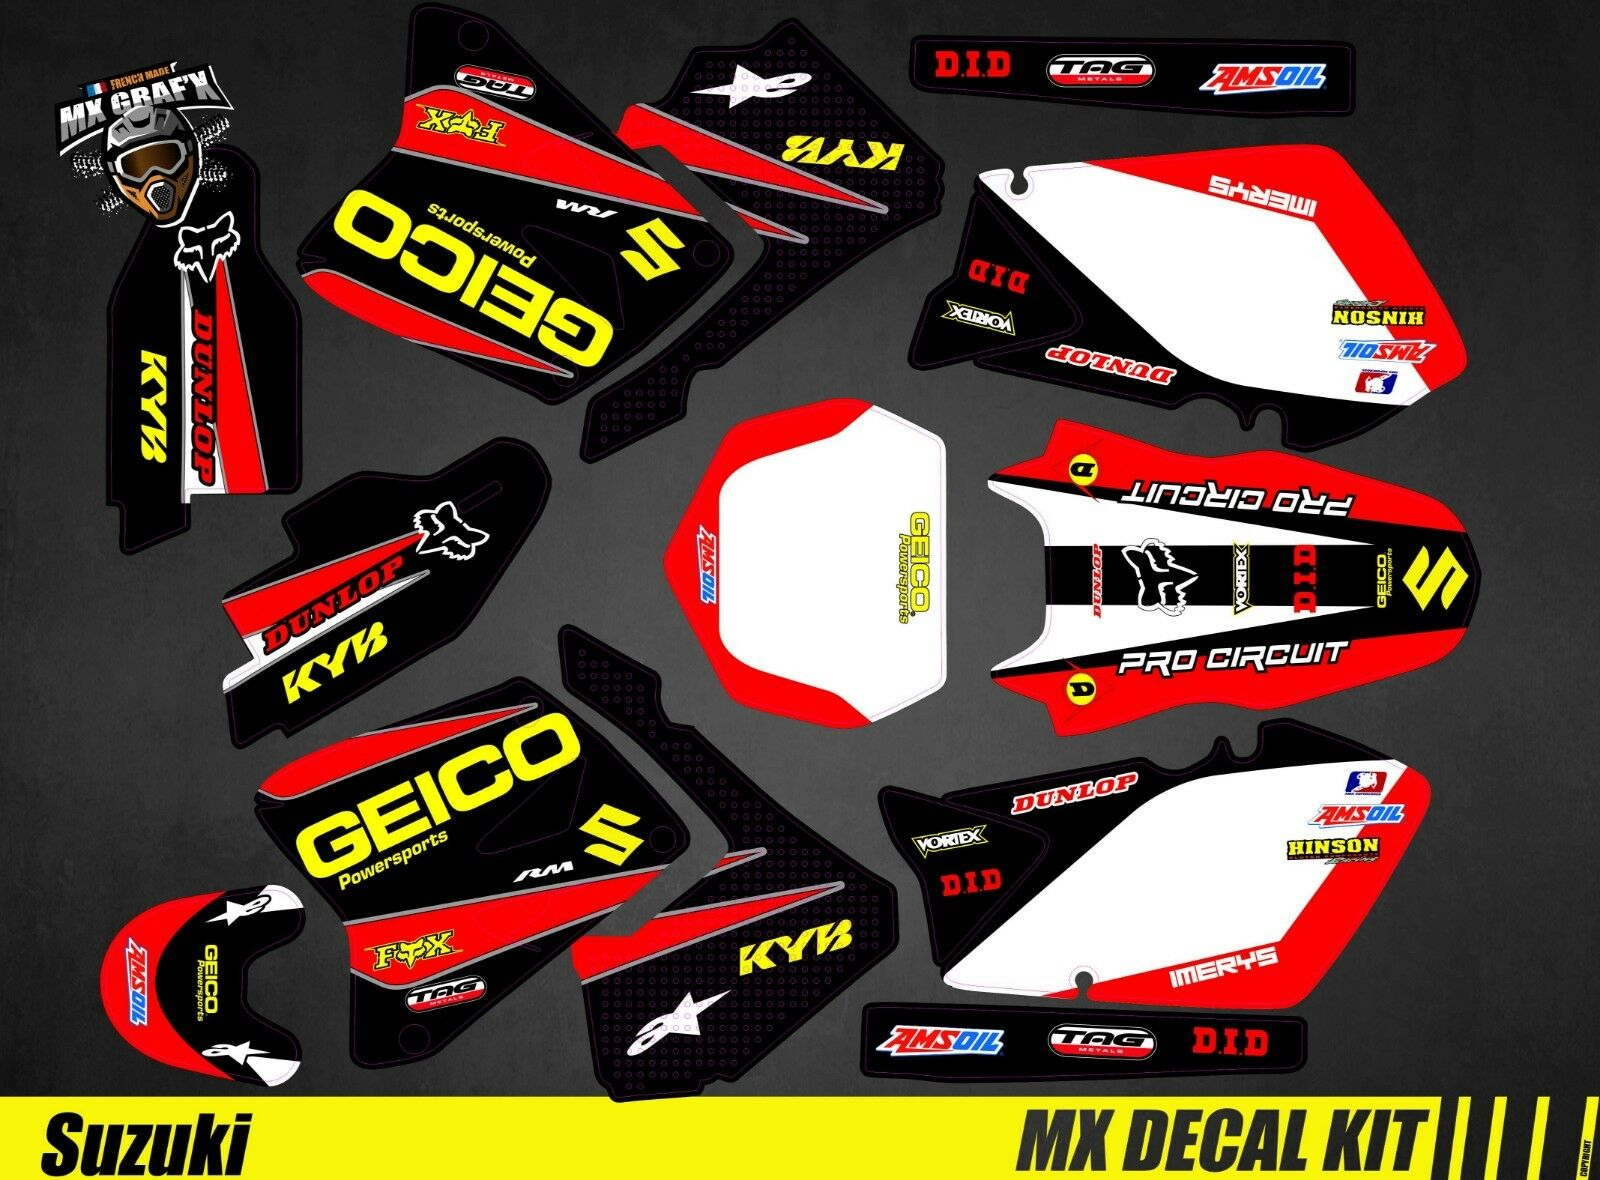 Kit Déco Moto pour / Mx Decal Decal Decal Kit for Suzuki RM 125 / 250 - Geico da43dd